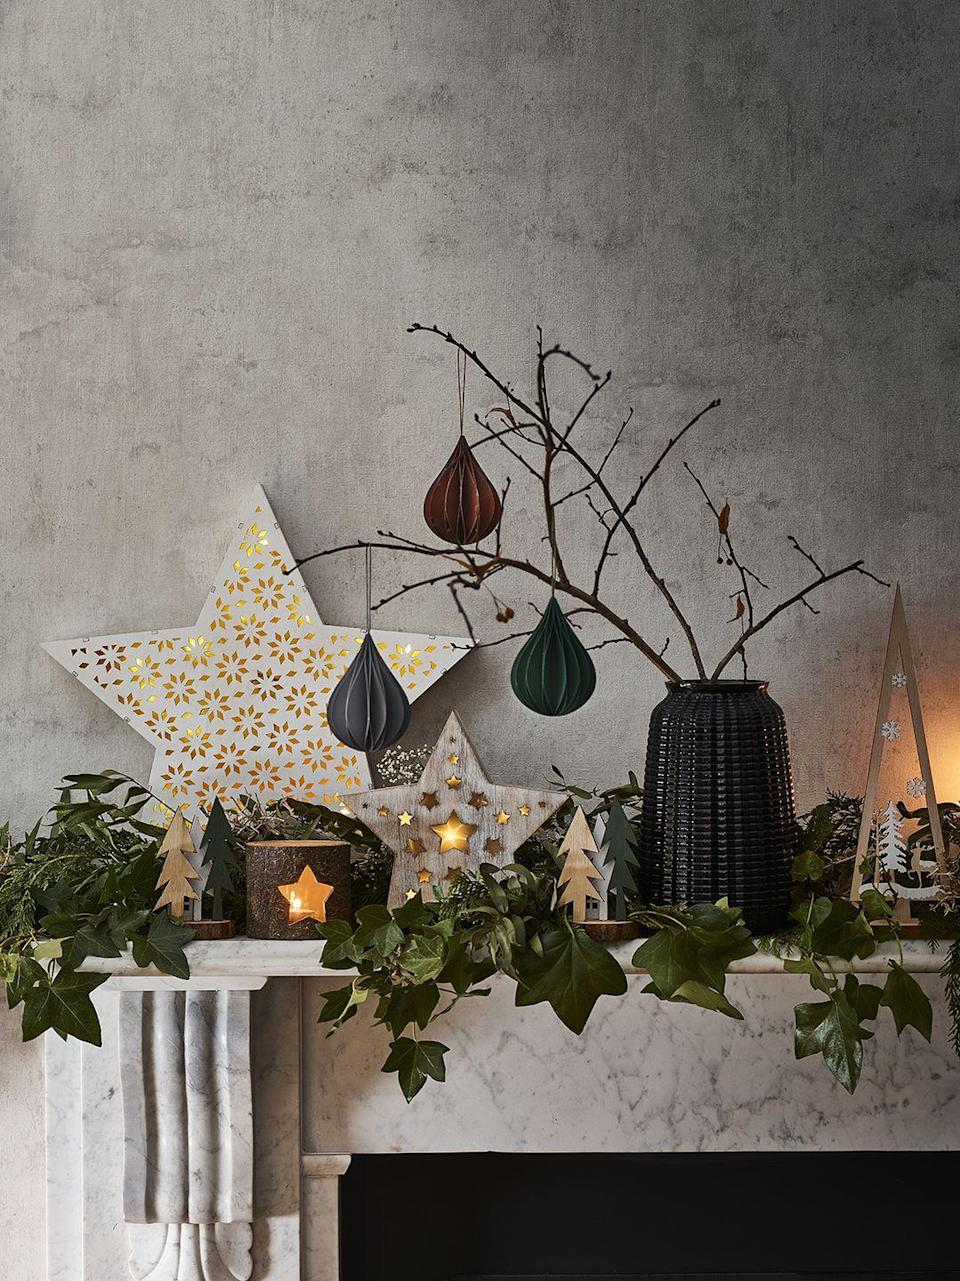 """<p><a href=""""https://www.housebeautiful.com/uk/lifestyle/shopping/g29585316/christmas-garland/"""" rel=""""nofollow noopener"""" target=""""_blank"""" data-ylk=""""slk:Garlands"""" class=""""link rapid-noclick-resp"""">Garlands</a> are a traditional decoration for fireplaces, but that doesn't mean you can't play around with adding other decorations. Dress your mantelpiece to impress this Christmas with mini <a href=""""https://www.housebeautiful.com/uk/lifestyle/shopping/g29471908/twig-christmas-tree/"""" rel=""""nofollow noopener"""" target=""""_blank"""" data-ylk=""""slk:twig trees"""" class=""""link rapid-noclick-resp"""">twig trees</a> (or simply twigs from the garden), glowing tea lights, fresh eucalyptus, paper decorations and your favourite figurines. </p><p><strong>READ MORE</strong>: <a href=""""https://www.housebeautiful.com/uk/lifestyle/shopping/g29585316/christmas-garland/"""" rel=""""nofollow noopener"""" target=""""_blank"""" data-ylk=""""slk:26 Christmas garlands to buy for your home"""" class=""""link rapid-noclick-resp"""">26 Christmas garlands to buy for your home</a></p>"""